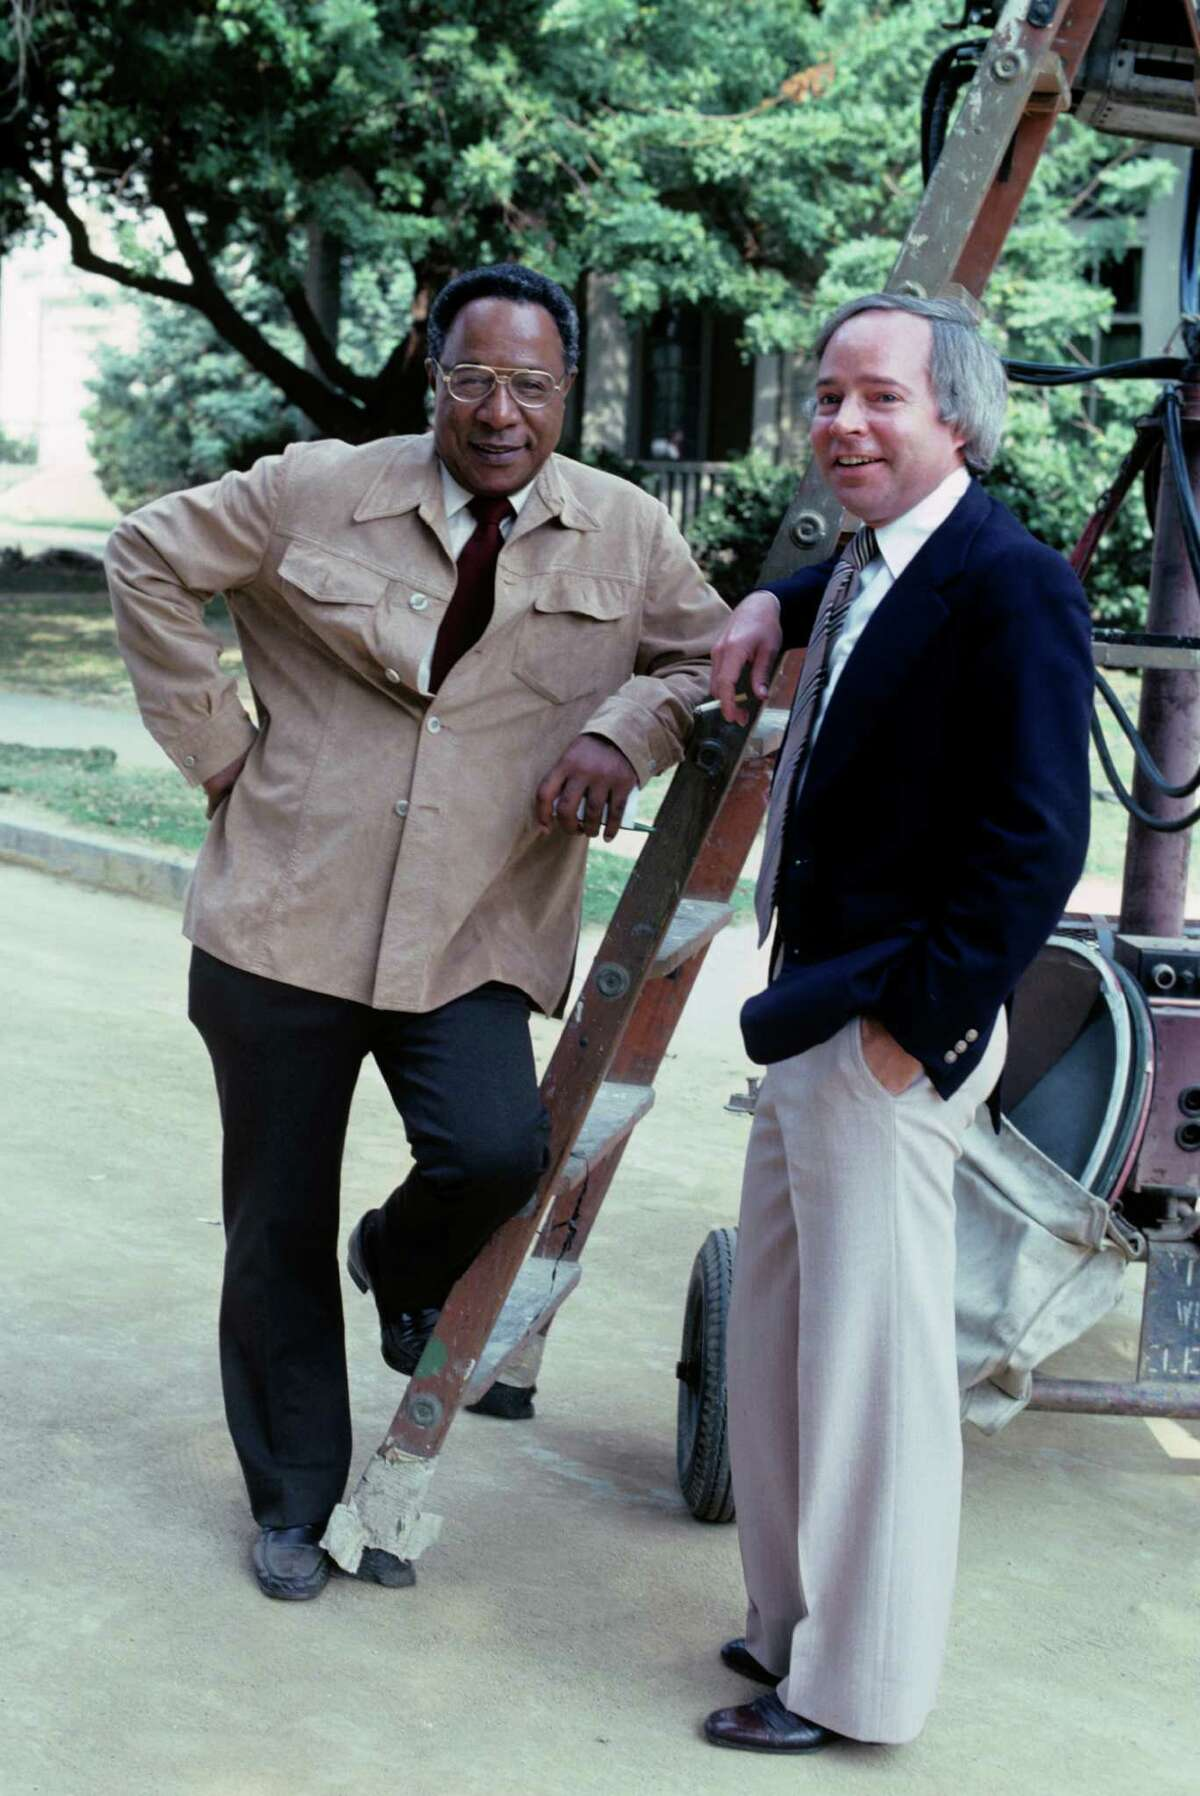 Brandon Stoddard 1937-2014 : Bridgeport-born television executive (pictured, right) at ABC who shepherded the production of